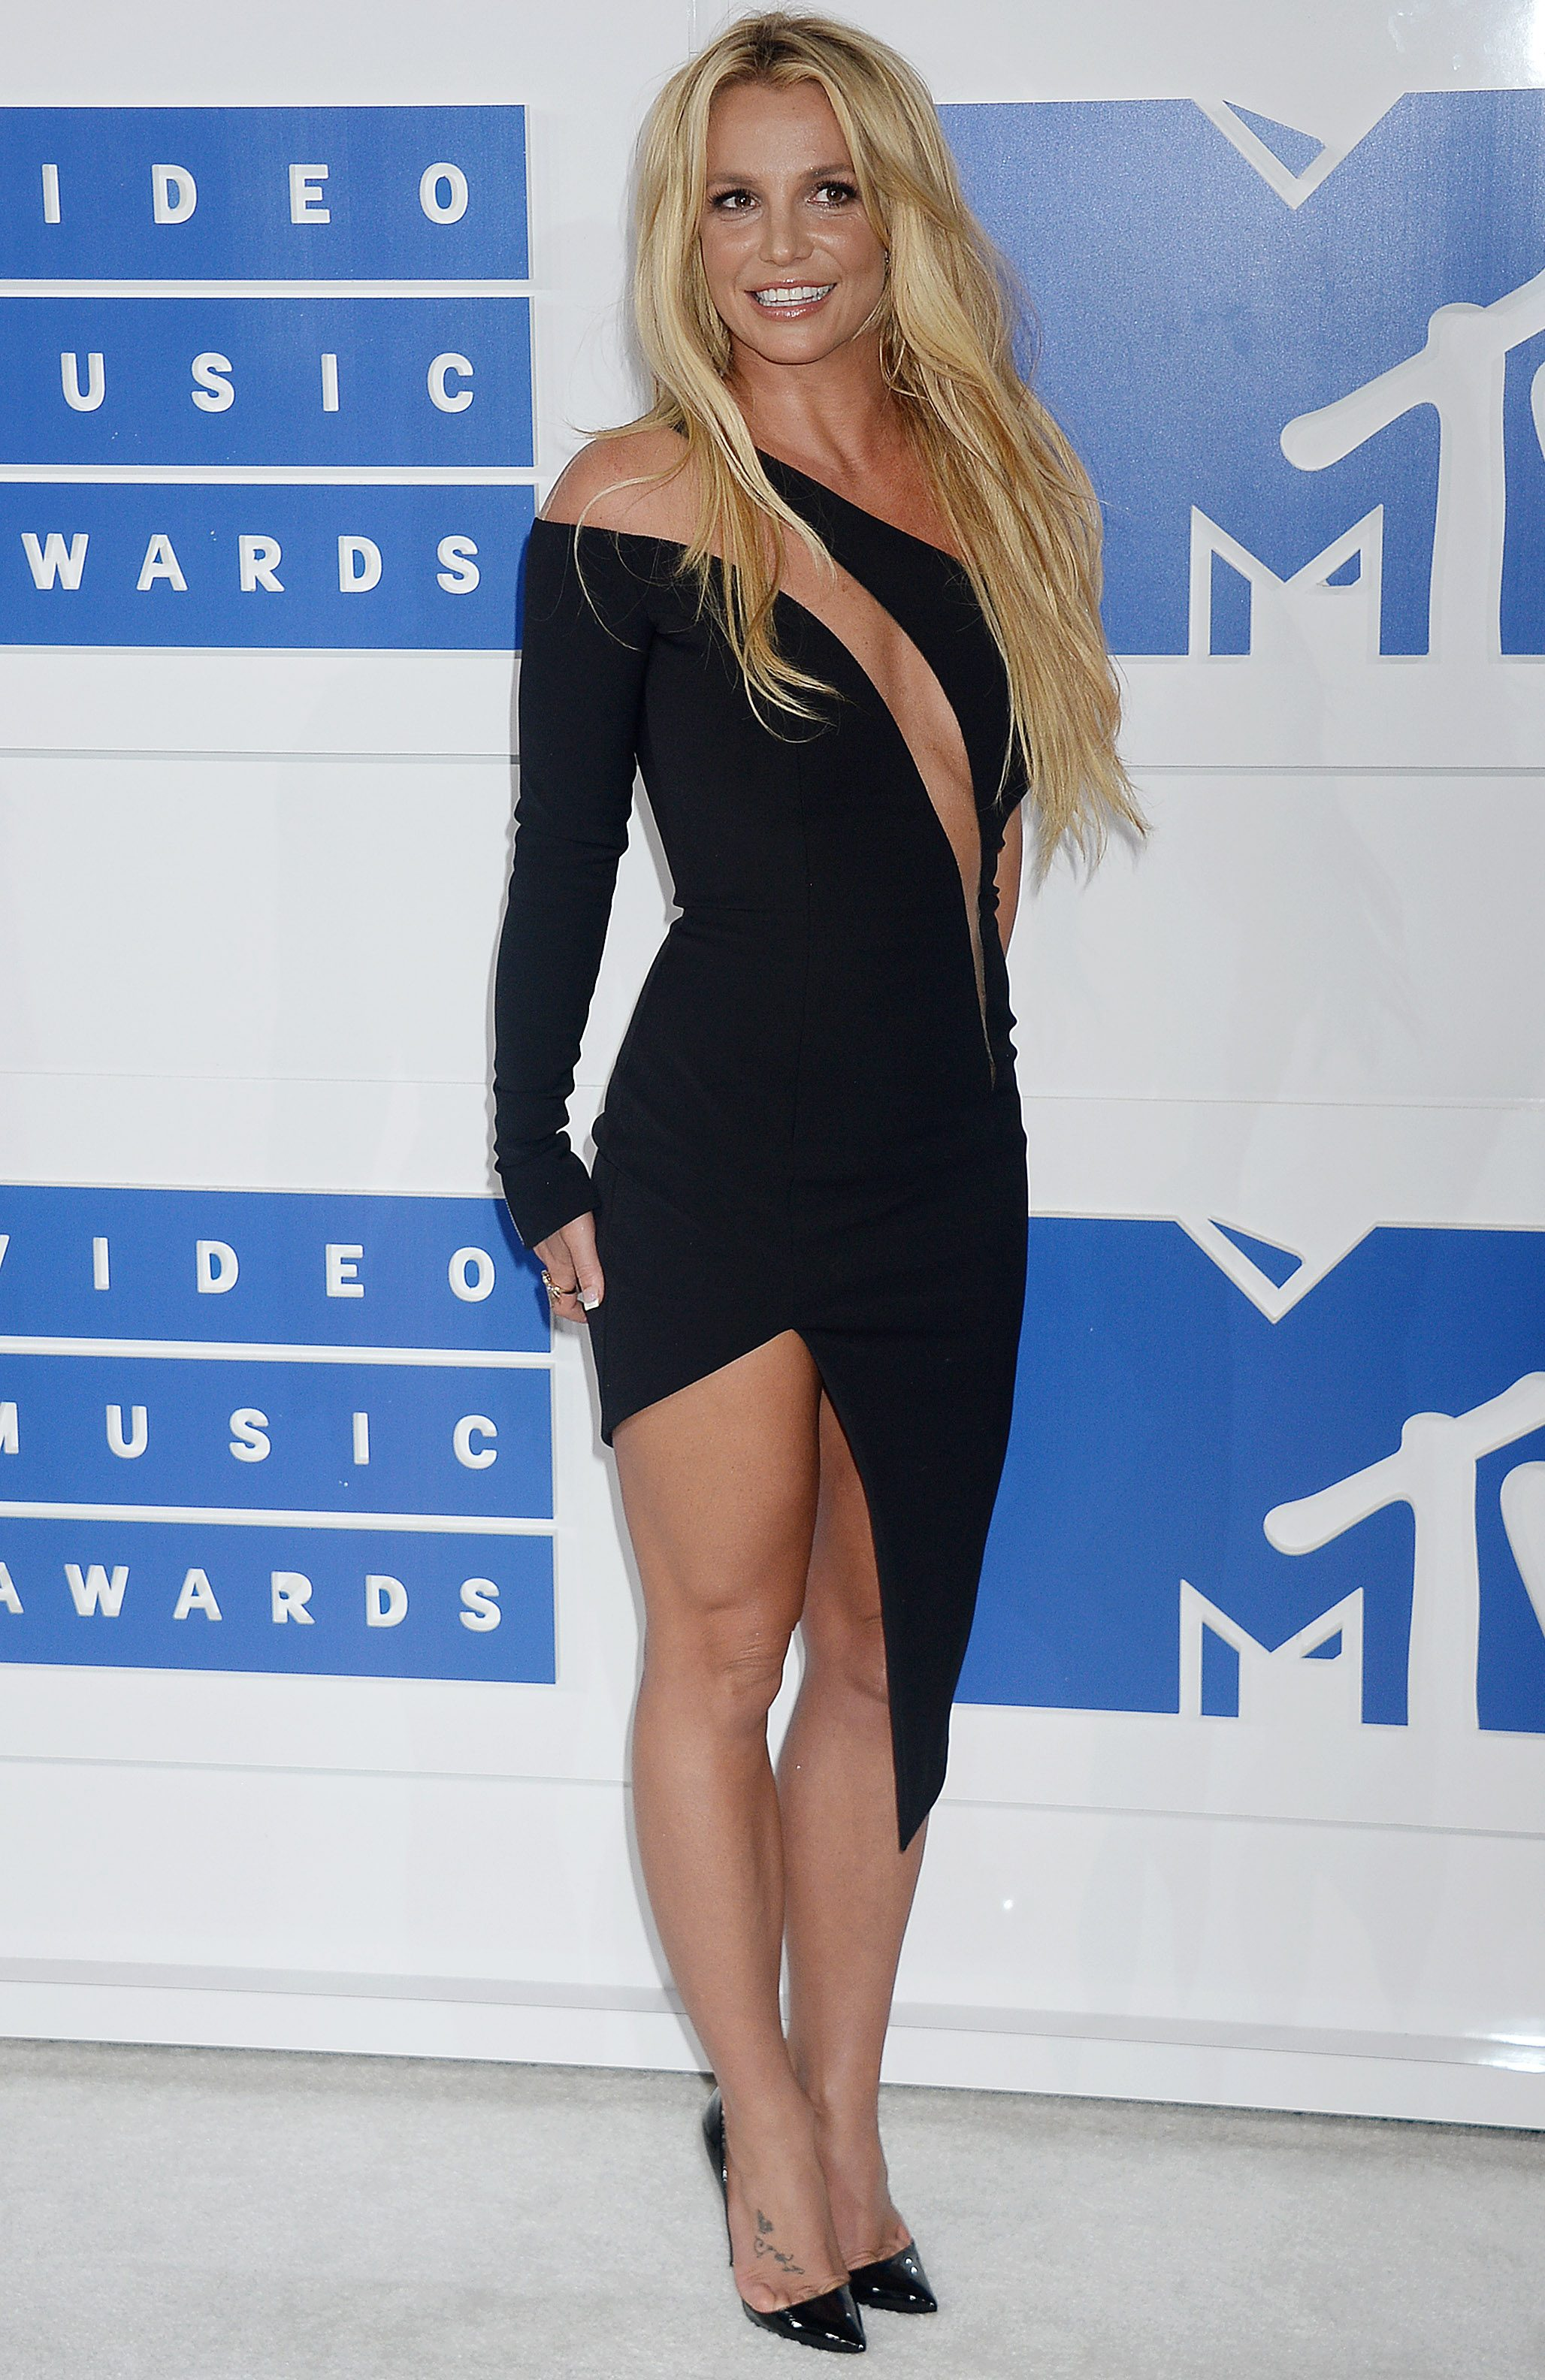 Mandatory Credit: Photo by Broadimage/REX/Shutterstock (5848766bq) Britney Spears 2016 MTV Video Music Awards, Arrivals, Madison Square Garden, New York, USA - 28 Aug 2016 2016 MTV Video Music Awards